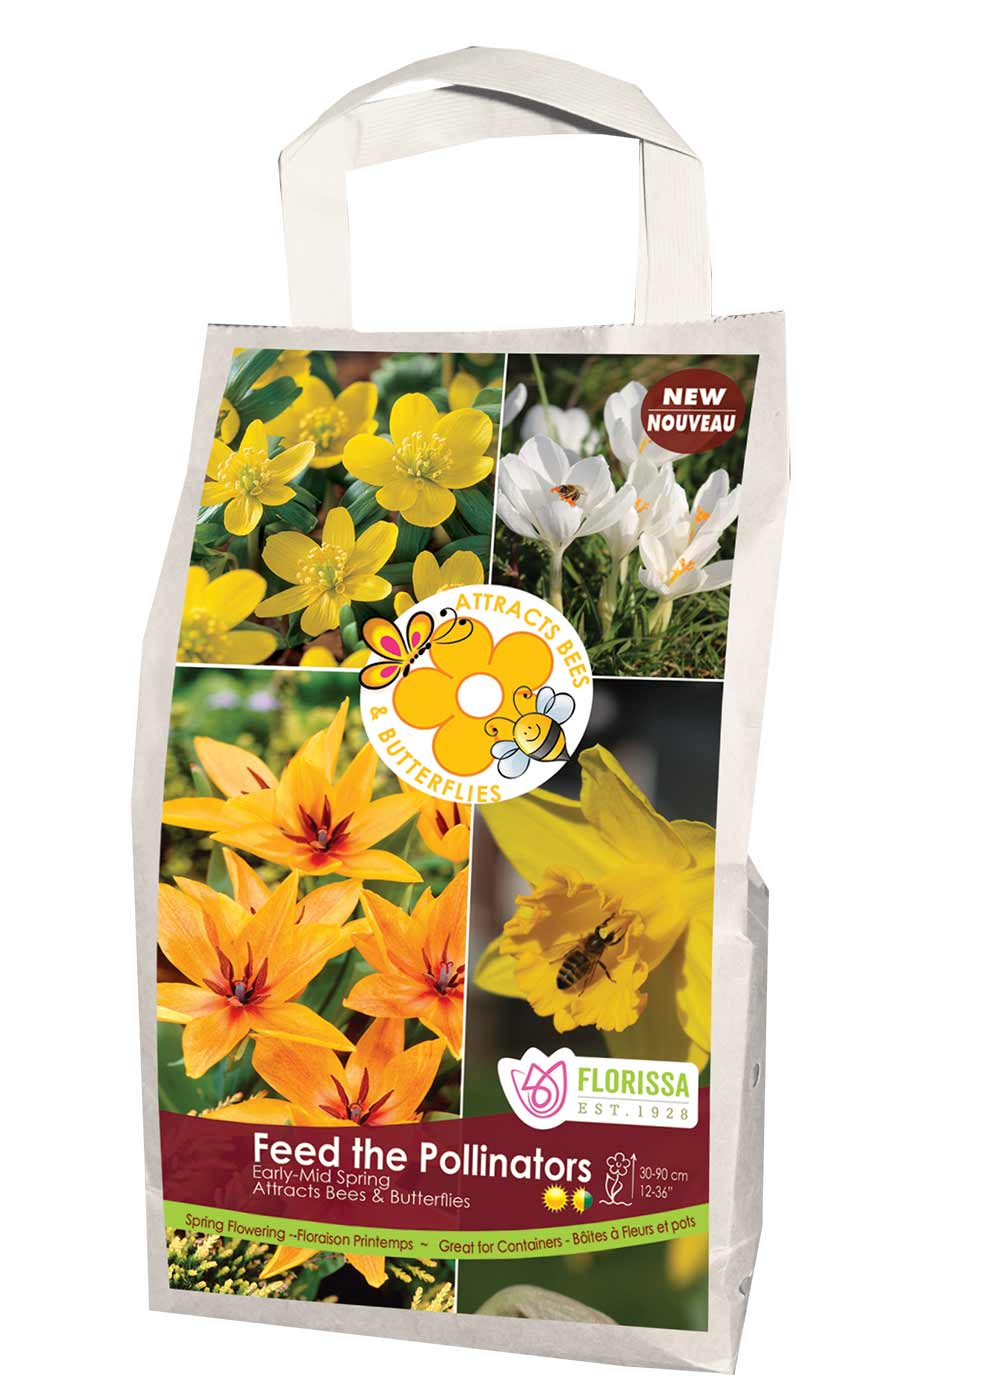 Feed the Pollinators - Early-Mid Spring